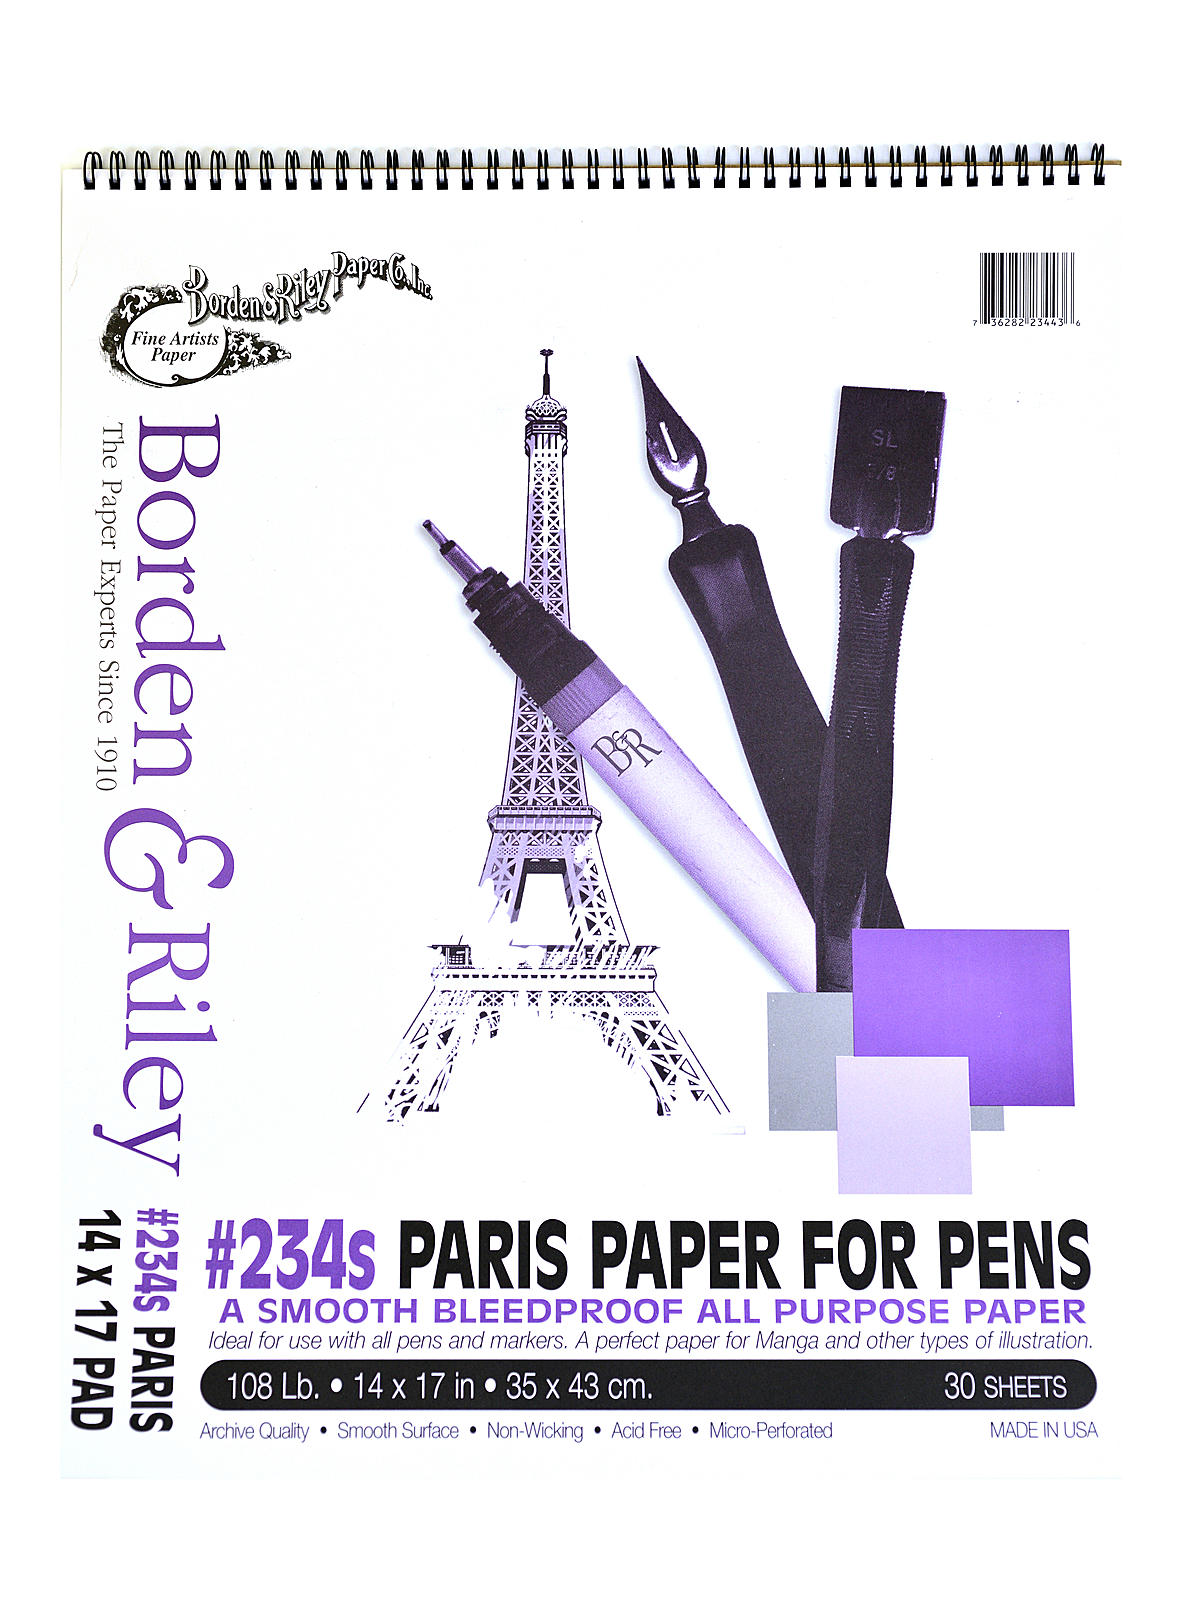 #234 Paris Bleedproof Pads 14 in. x 17 in. 30 sheets spiral bound